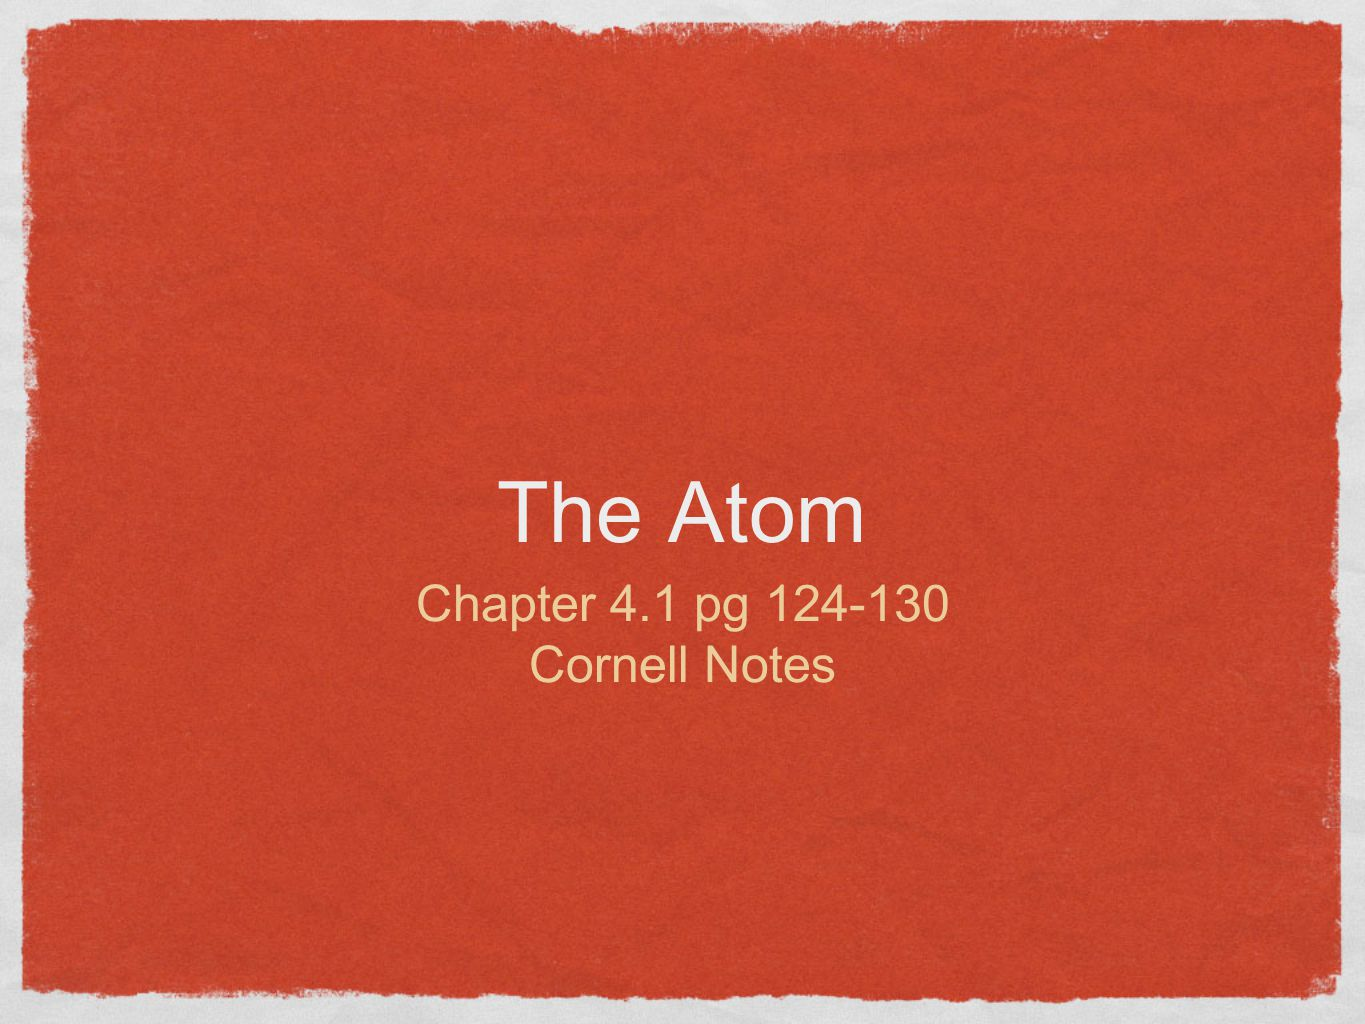 The Atom Chapter 4.1 pg 124-130 Cornell Notes